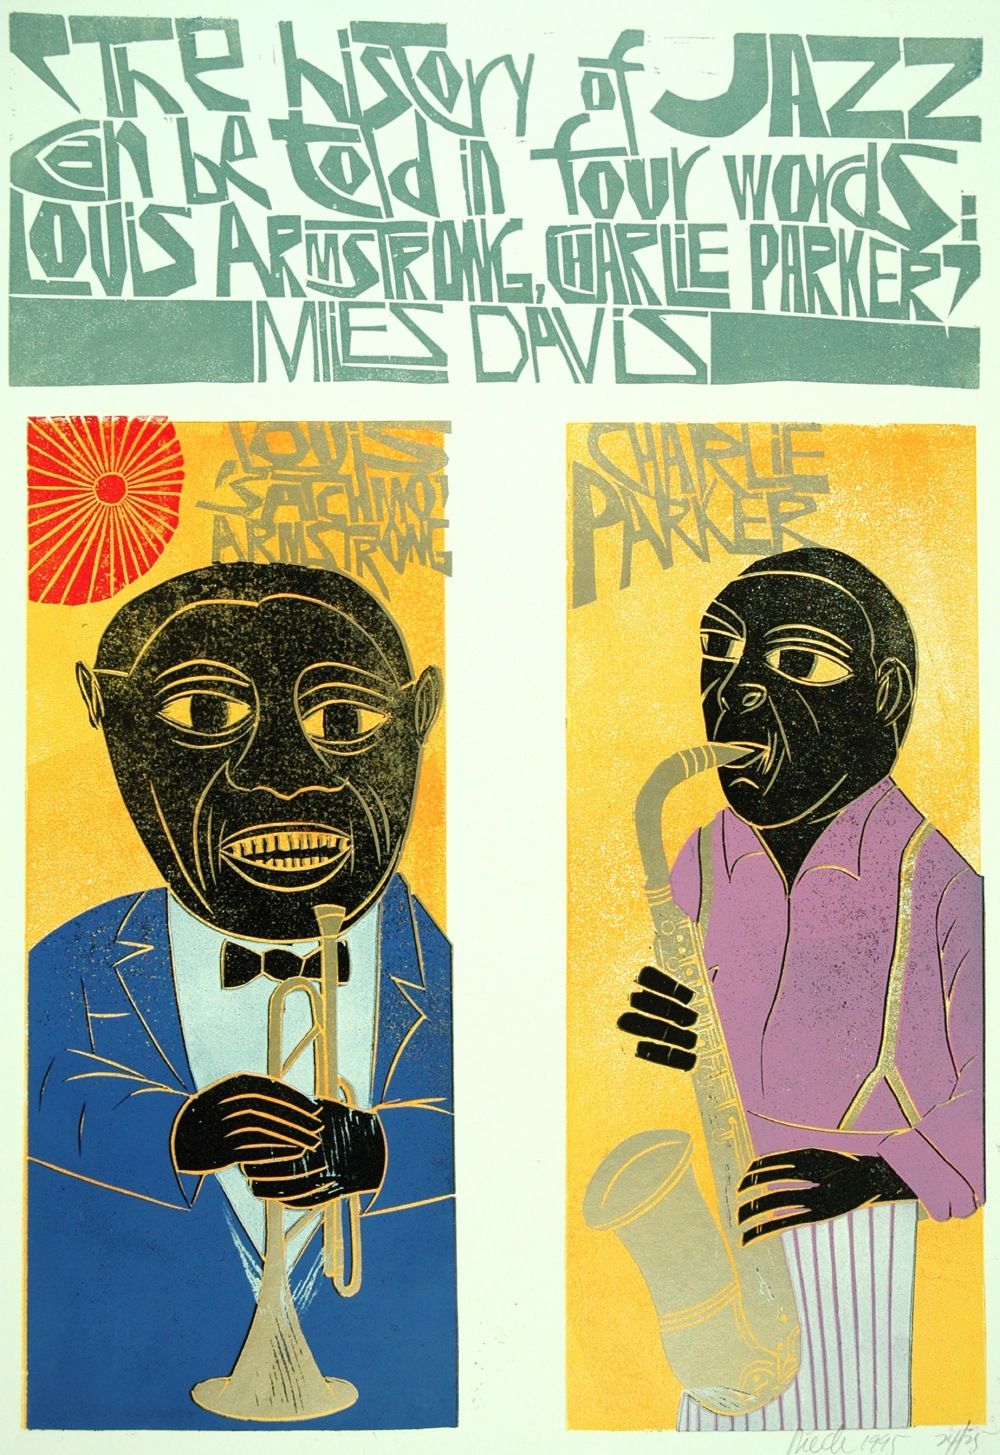 paul-peter-piech-the-history-of-jazz-1995-crsite-crsite